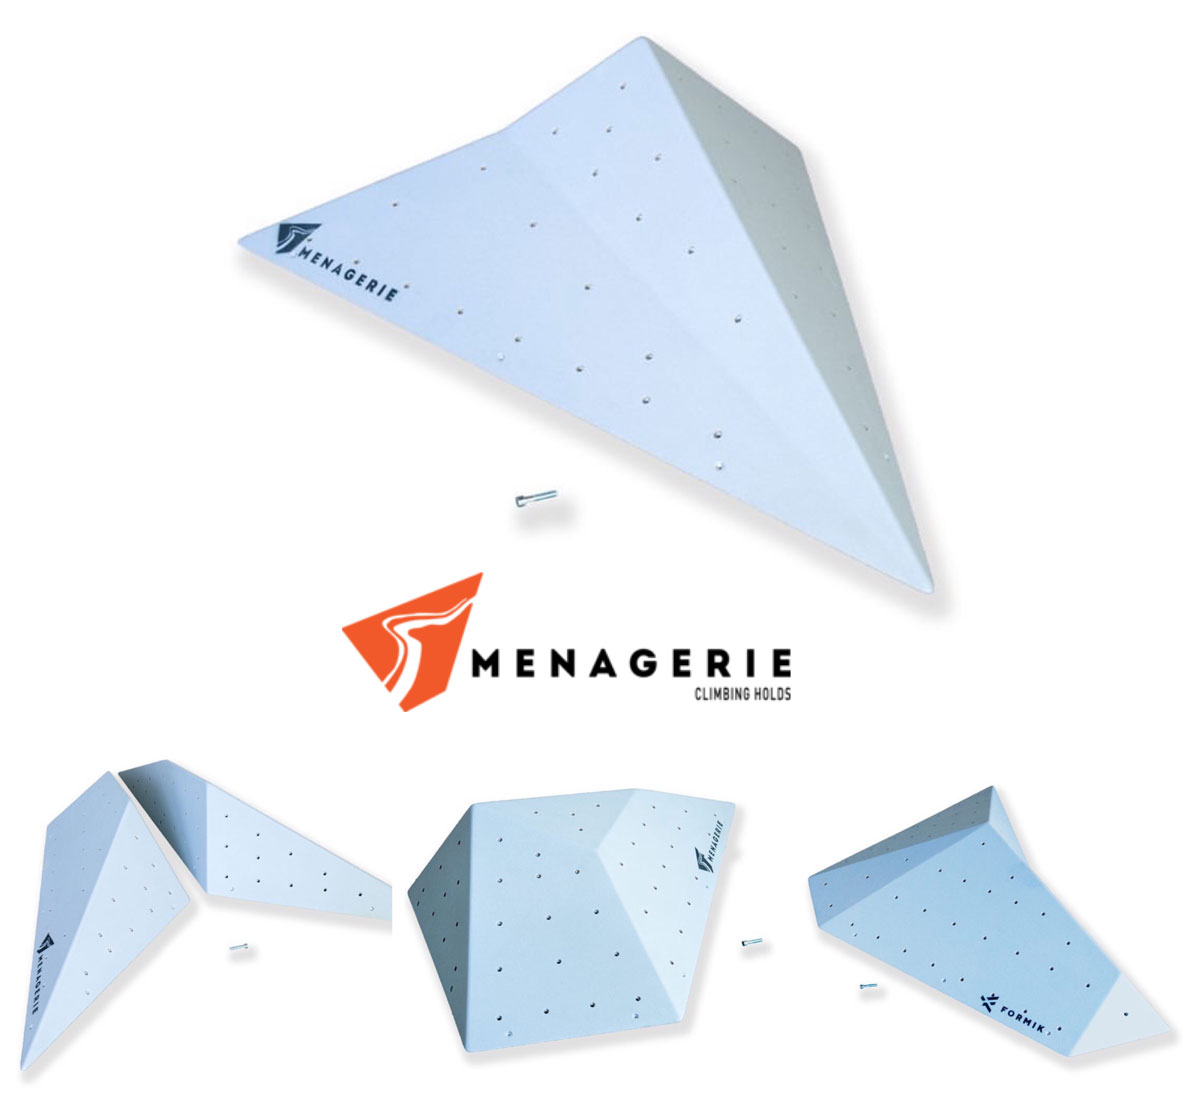 Menagerie Climbing Holds